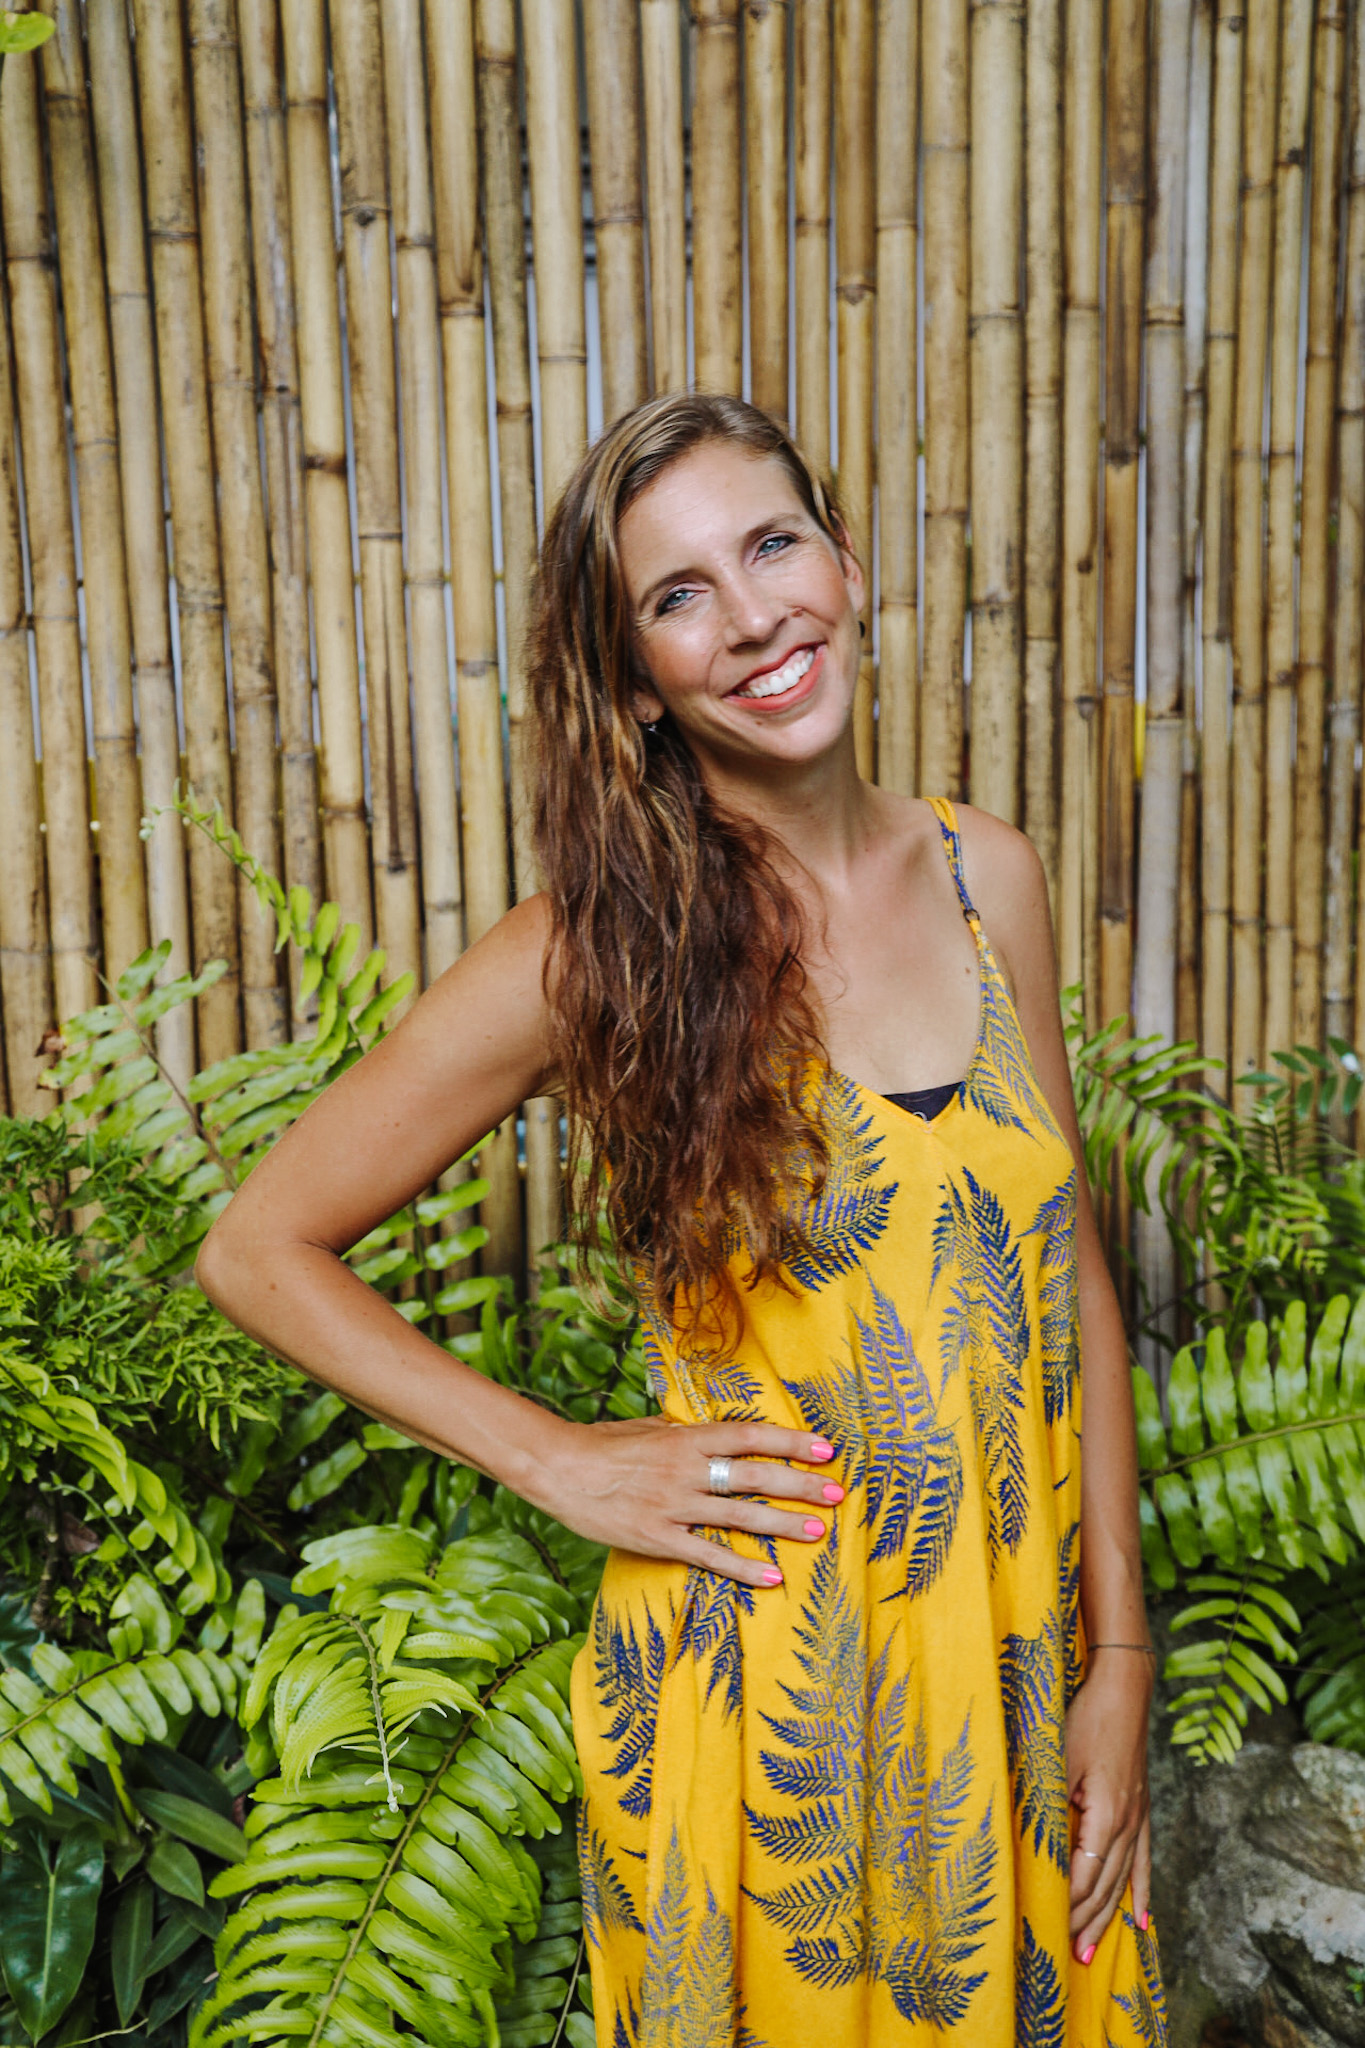 Woman smiling at the camera in front of a bamboo stick wall